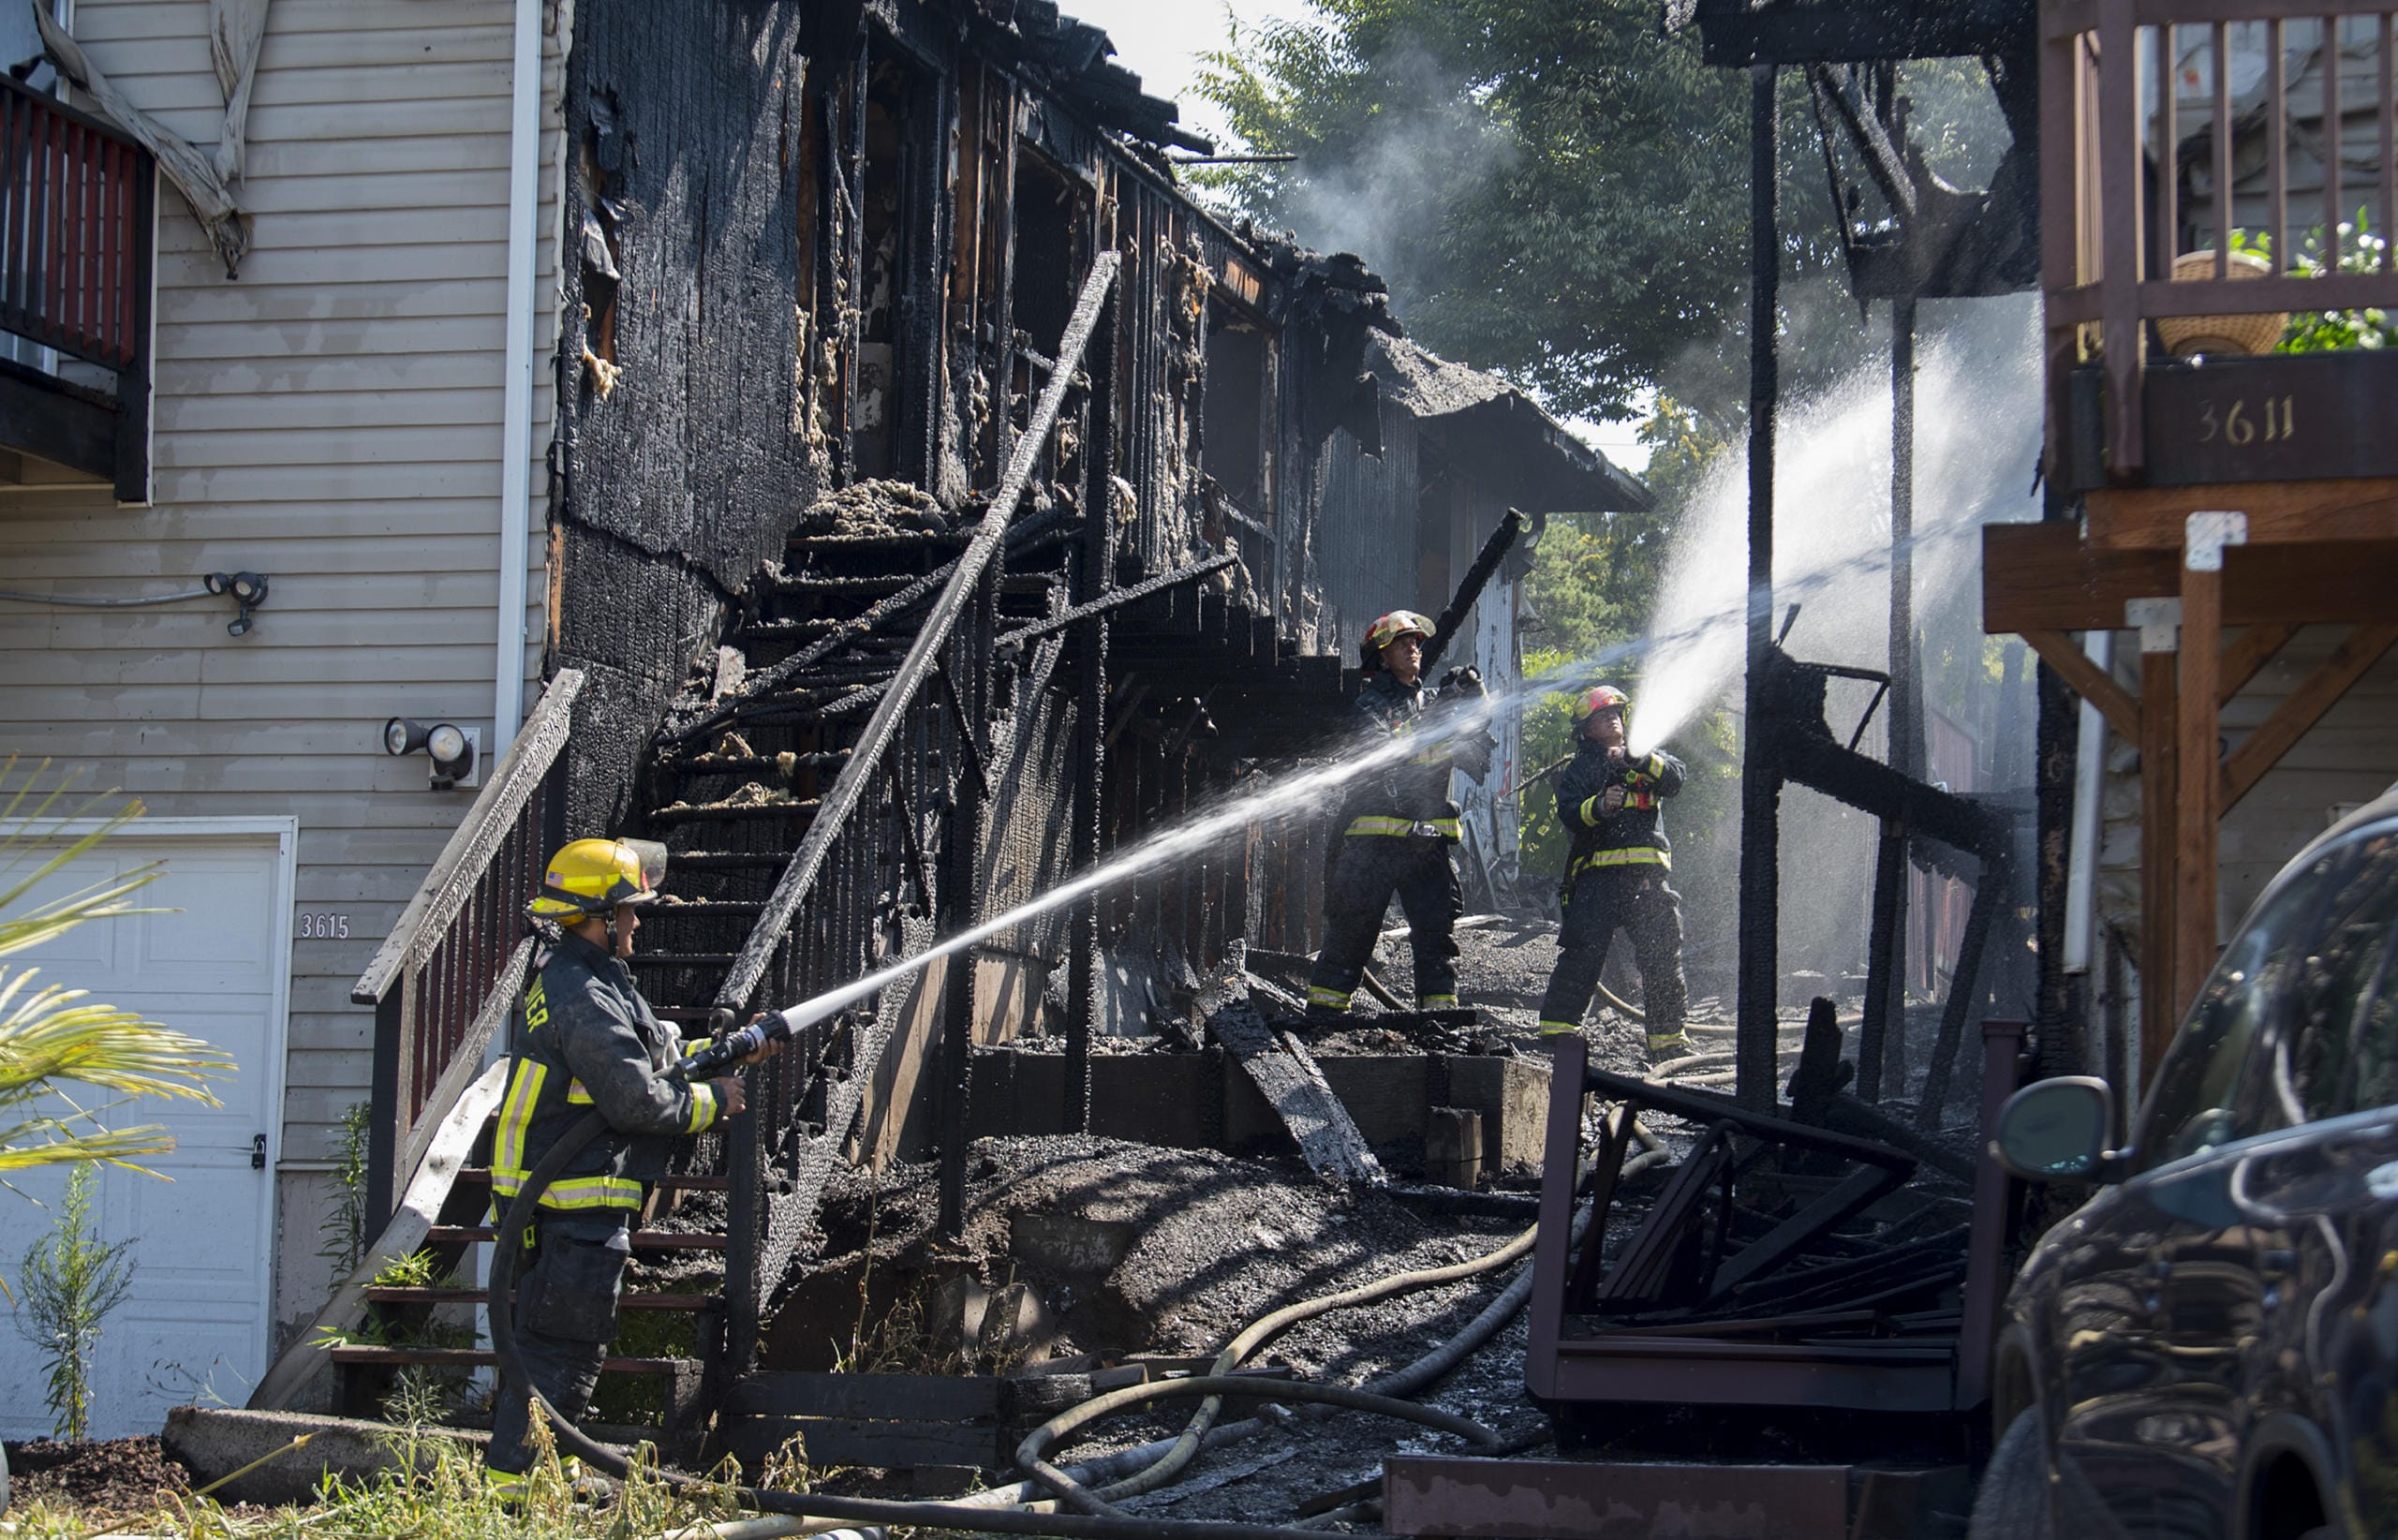 Firefighters work together to extinguish a fire that ripped through two adjoining duplexes on Olive Street on Friday morning, July 31, 2020. (Amanda Cowan/The Columbian)